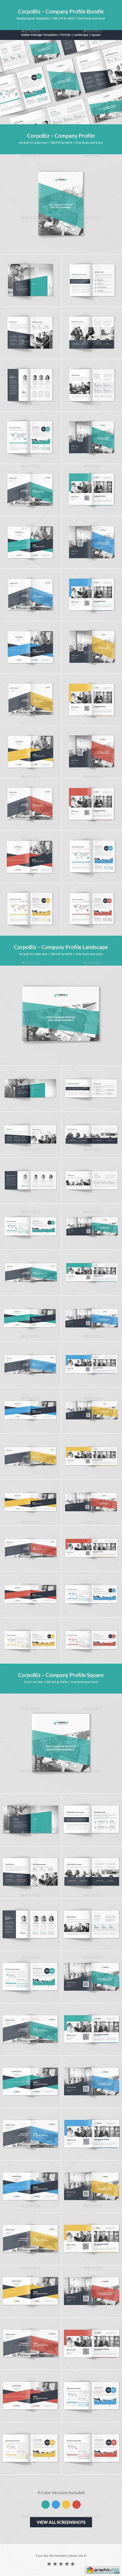 CorpoBiz – Business and Corporate Company Profile Brochures Bundle 3 in 1